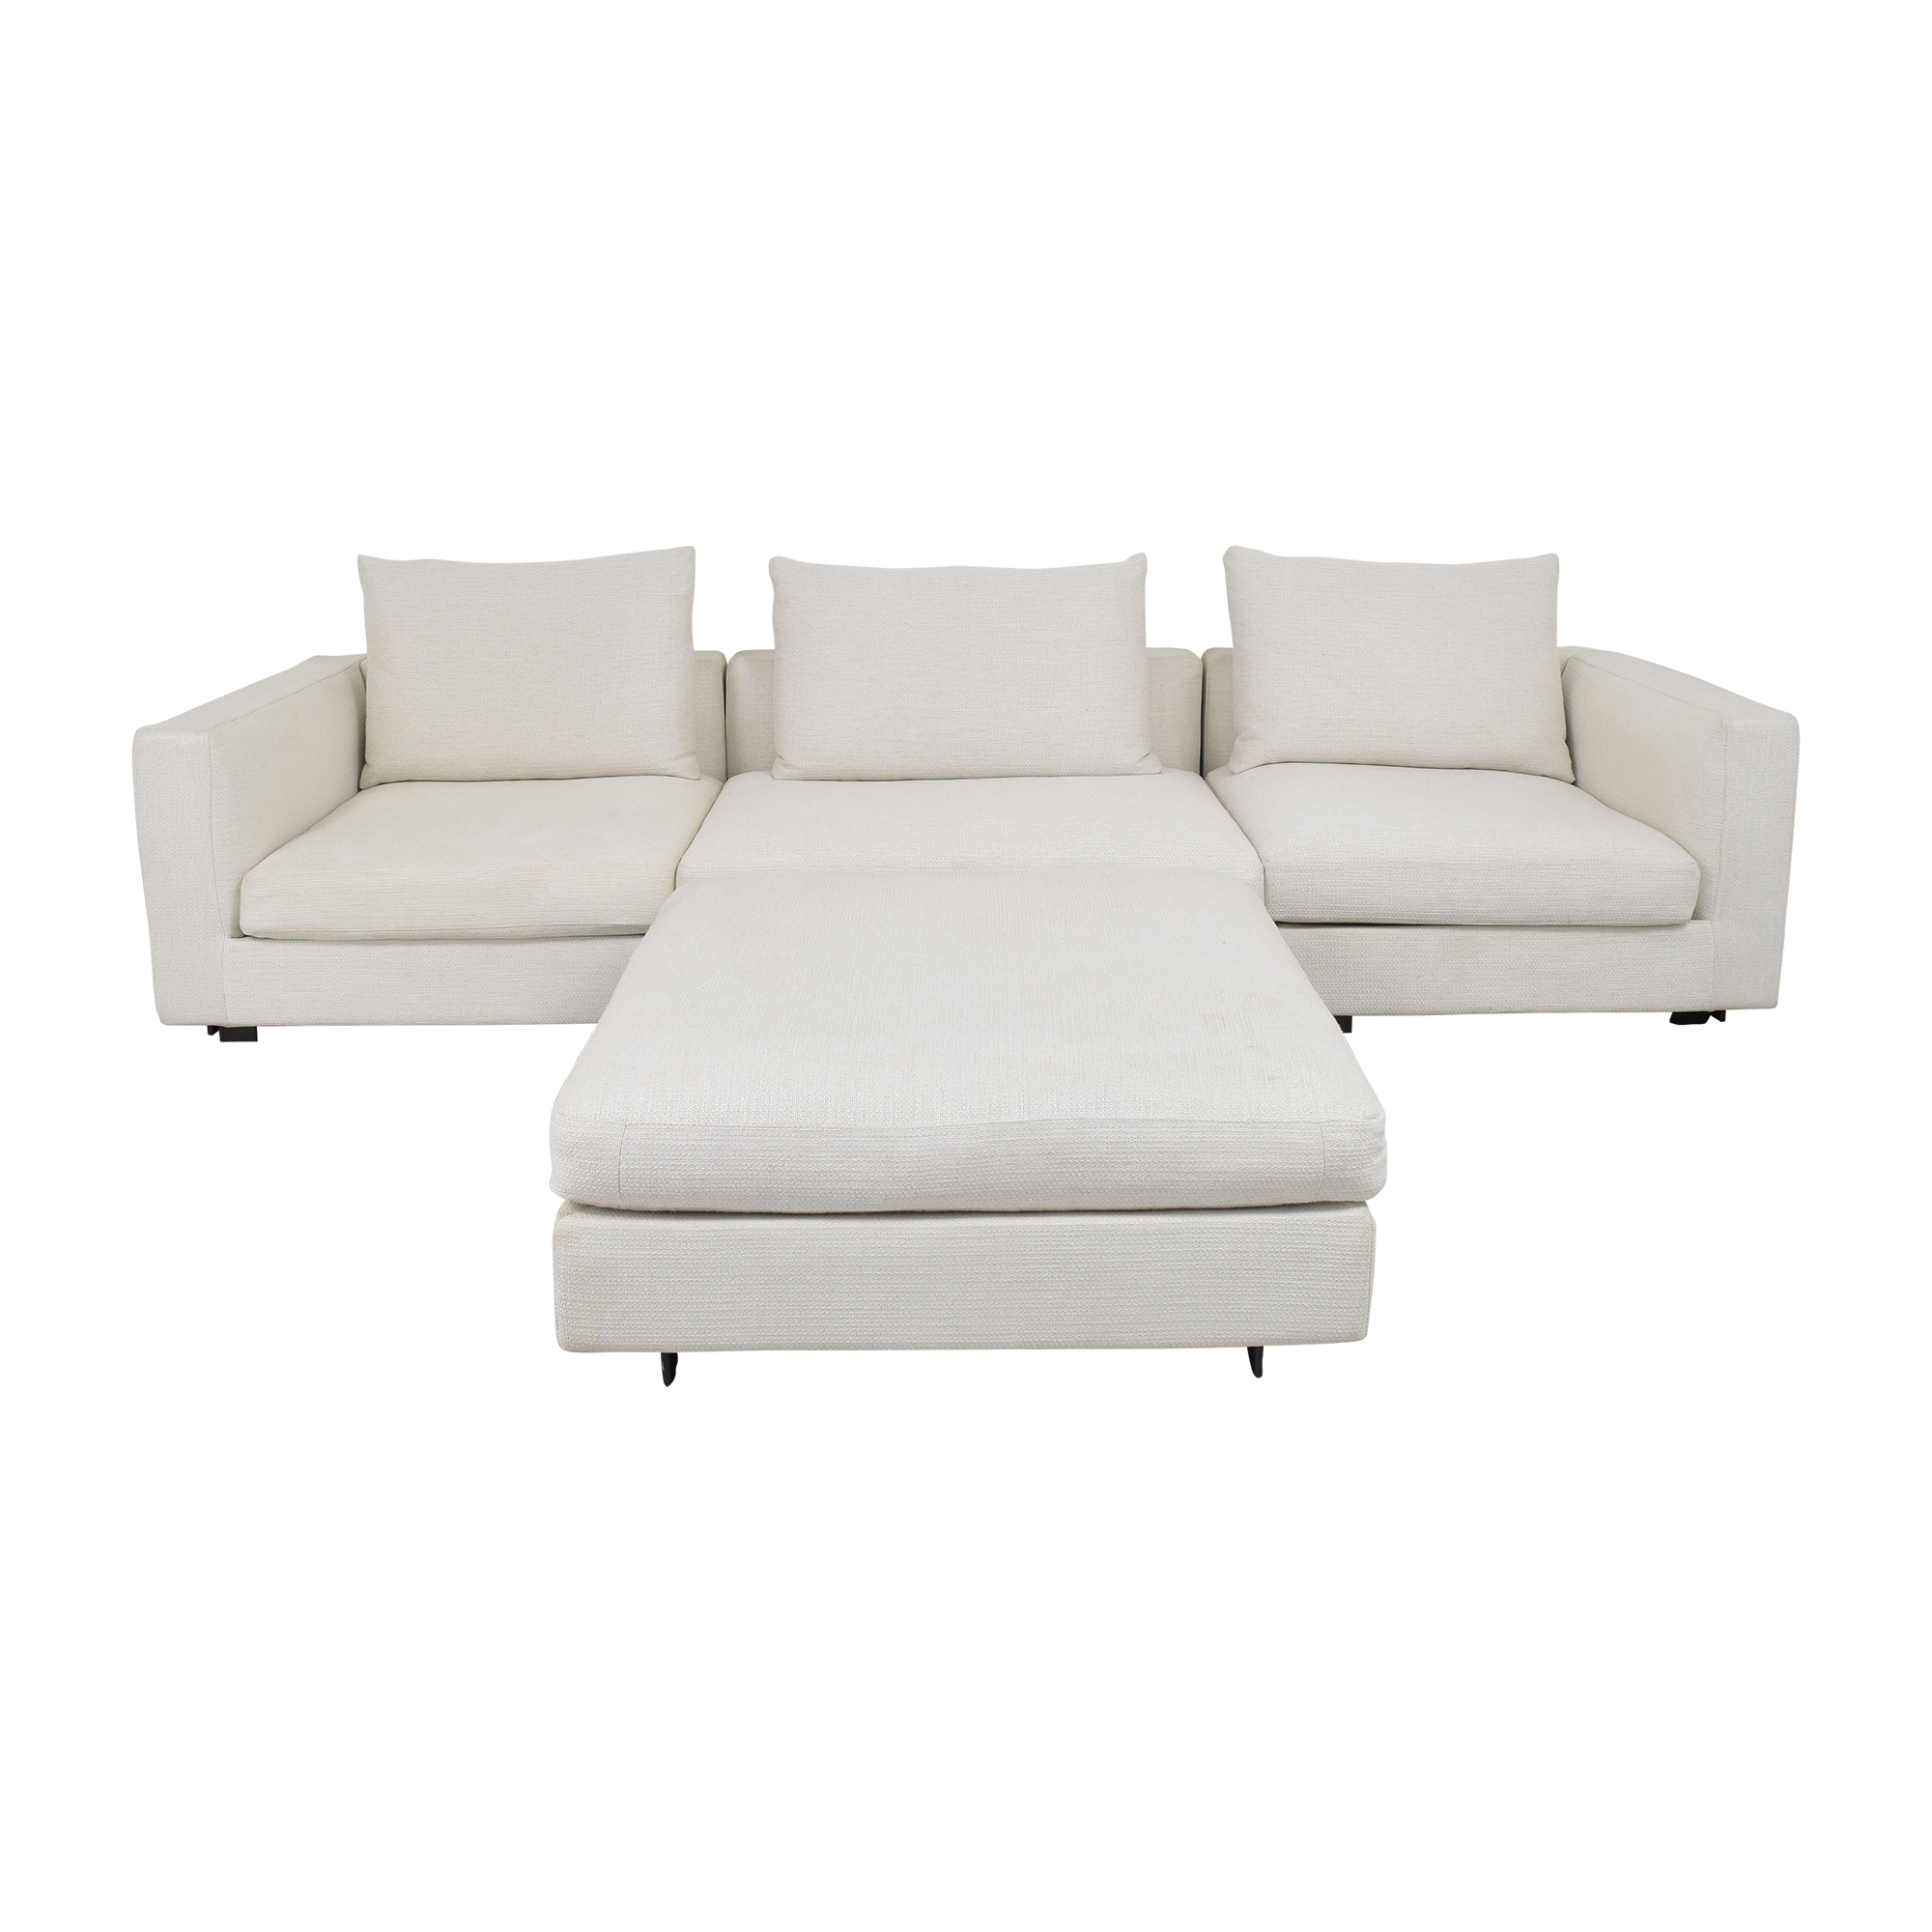 Camerich Freetown Sectional Sofa with Ottoman / Sofas